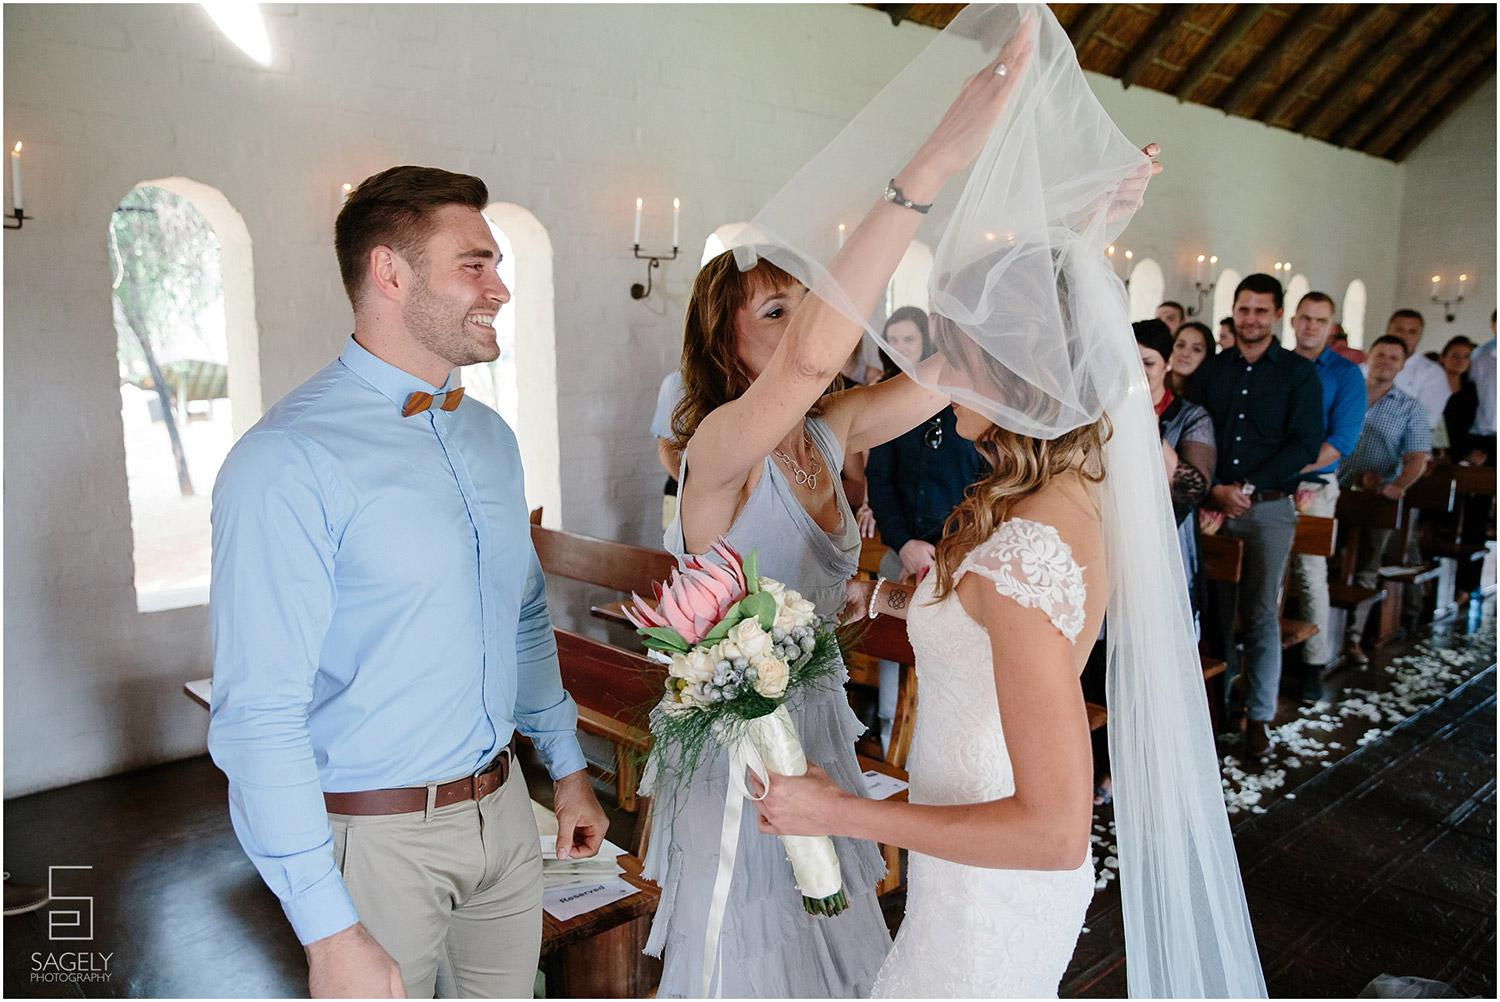 Wedding Locations in Pretoria